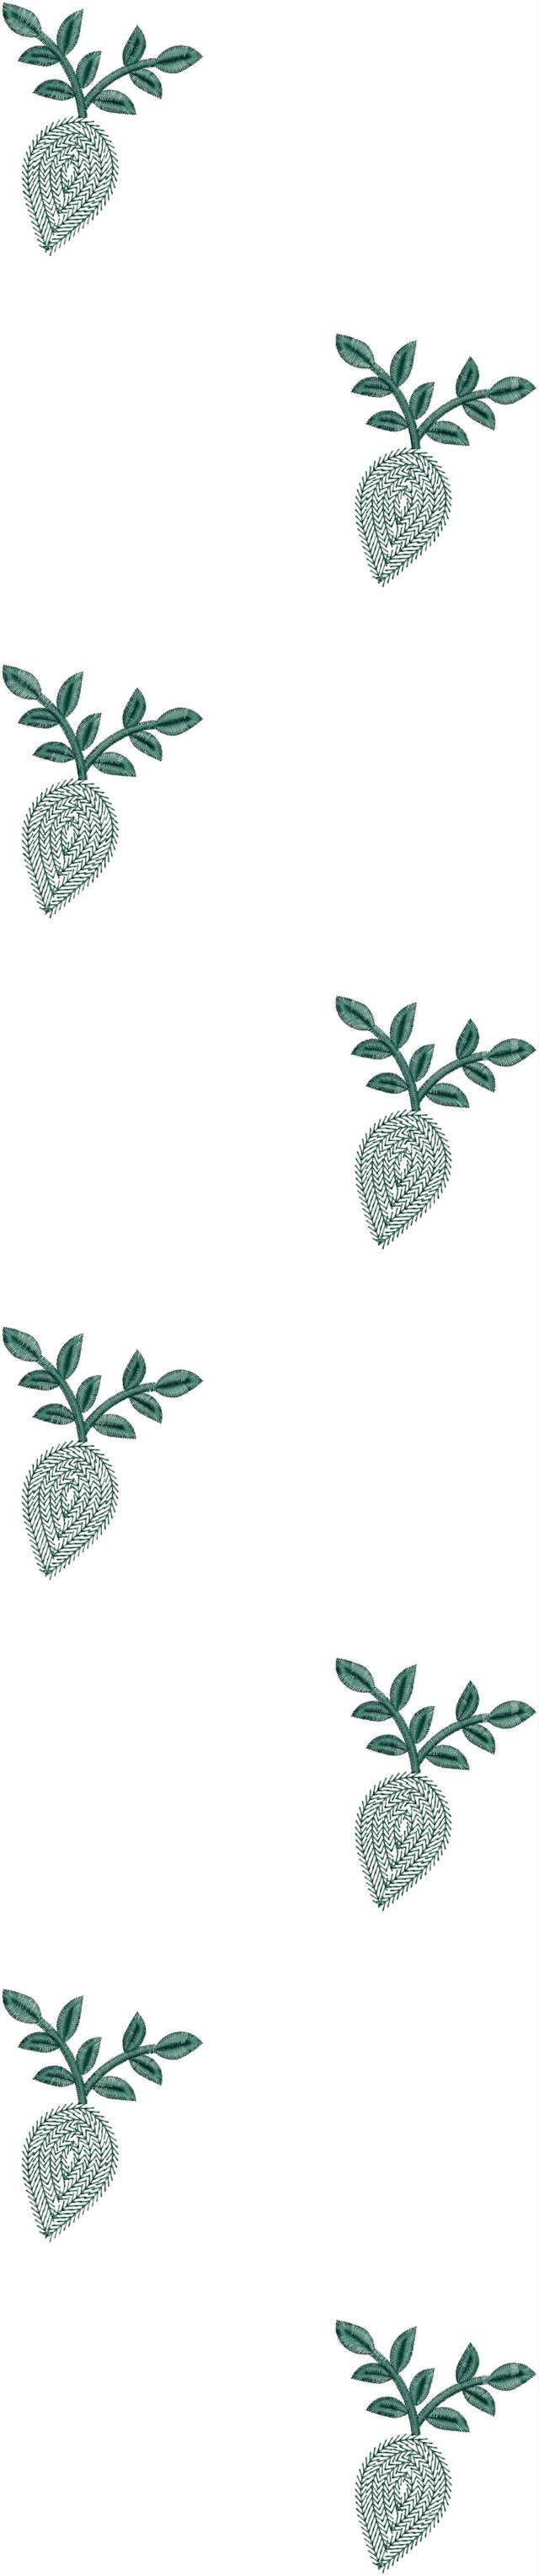 Fancy Leaf concept Duptta rmbroidery design